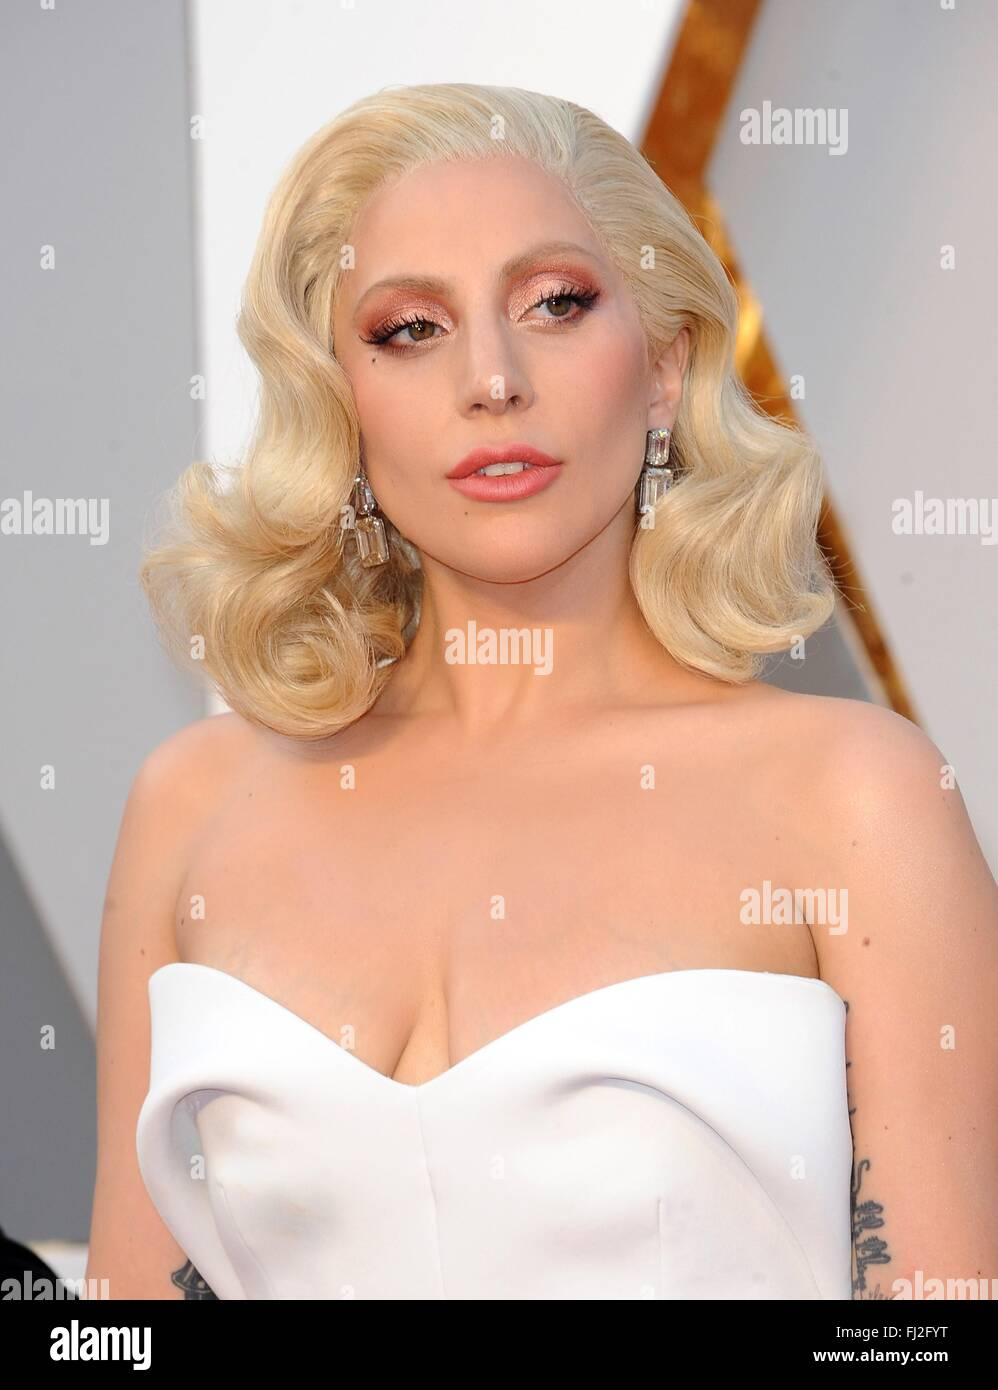 Los Angeles, CA, USA. 28th Feb, 2016. Lady Gaga at arrivals for The 88th Academy Awards Oscars 2016 - Arrivals 2, Stock Photo